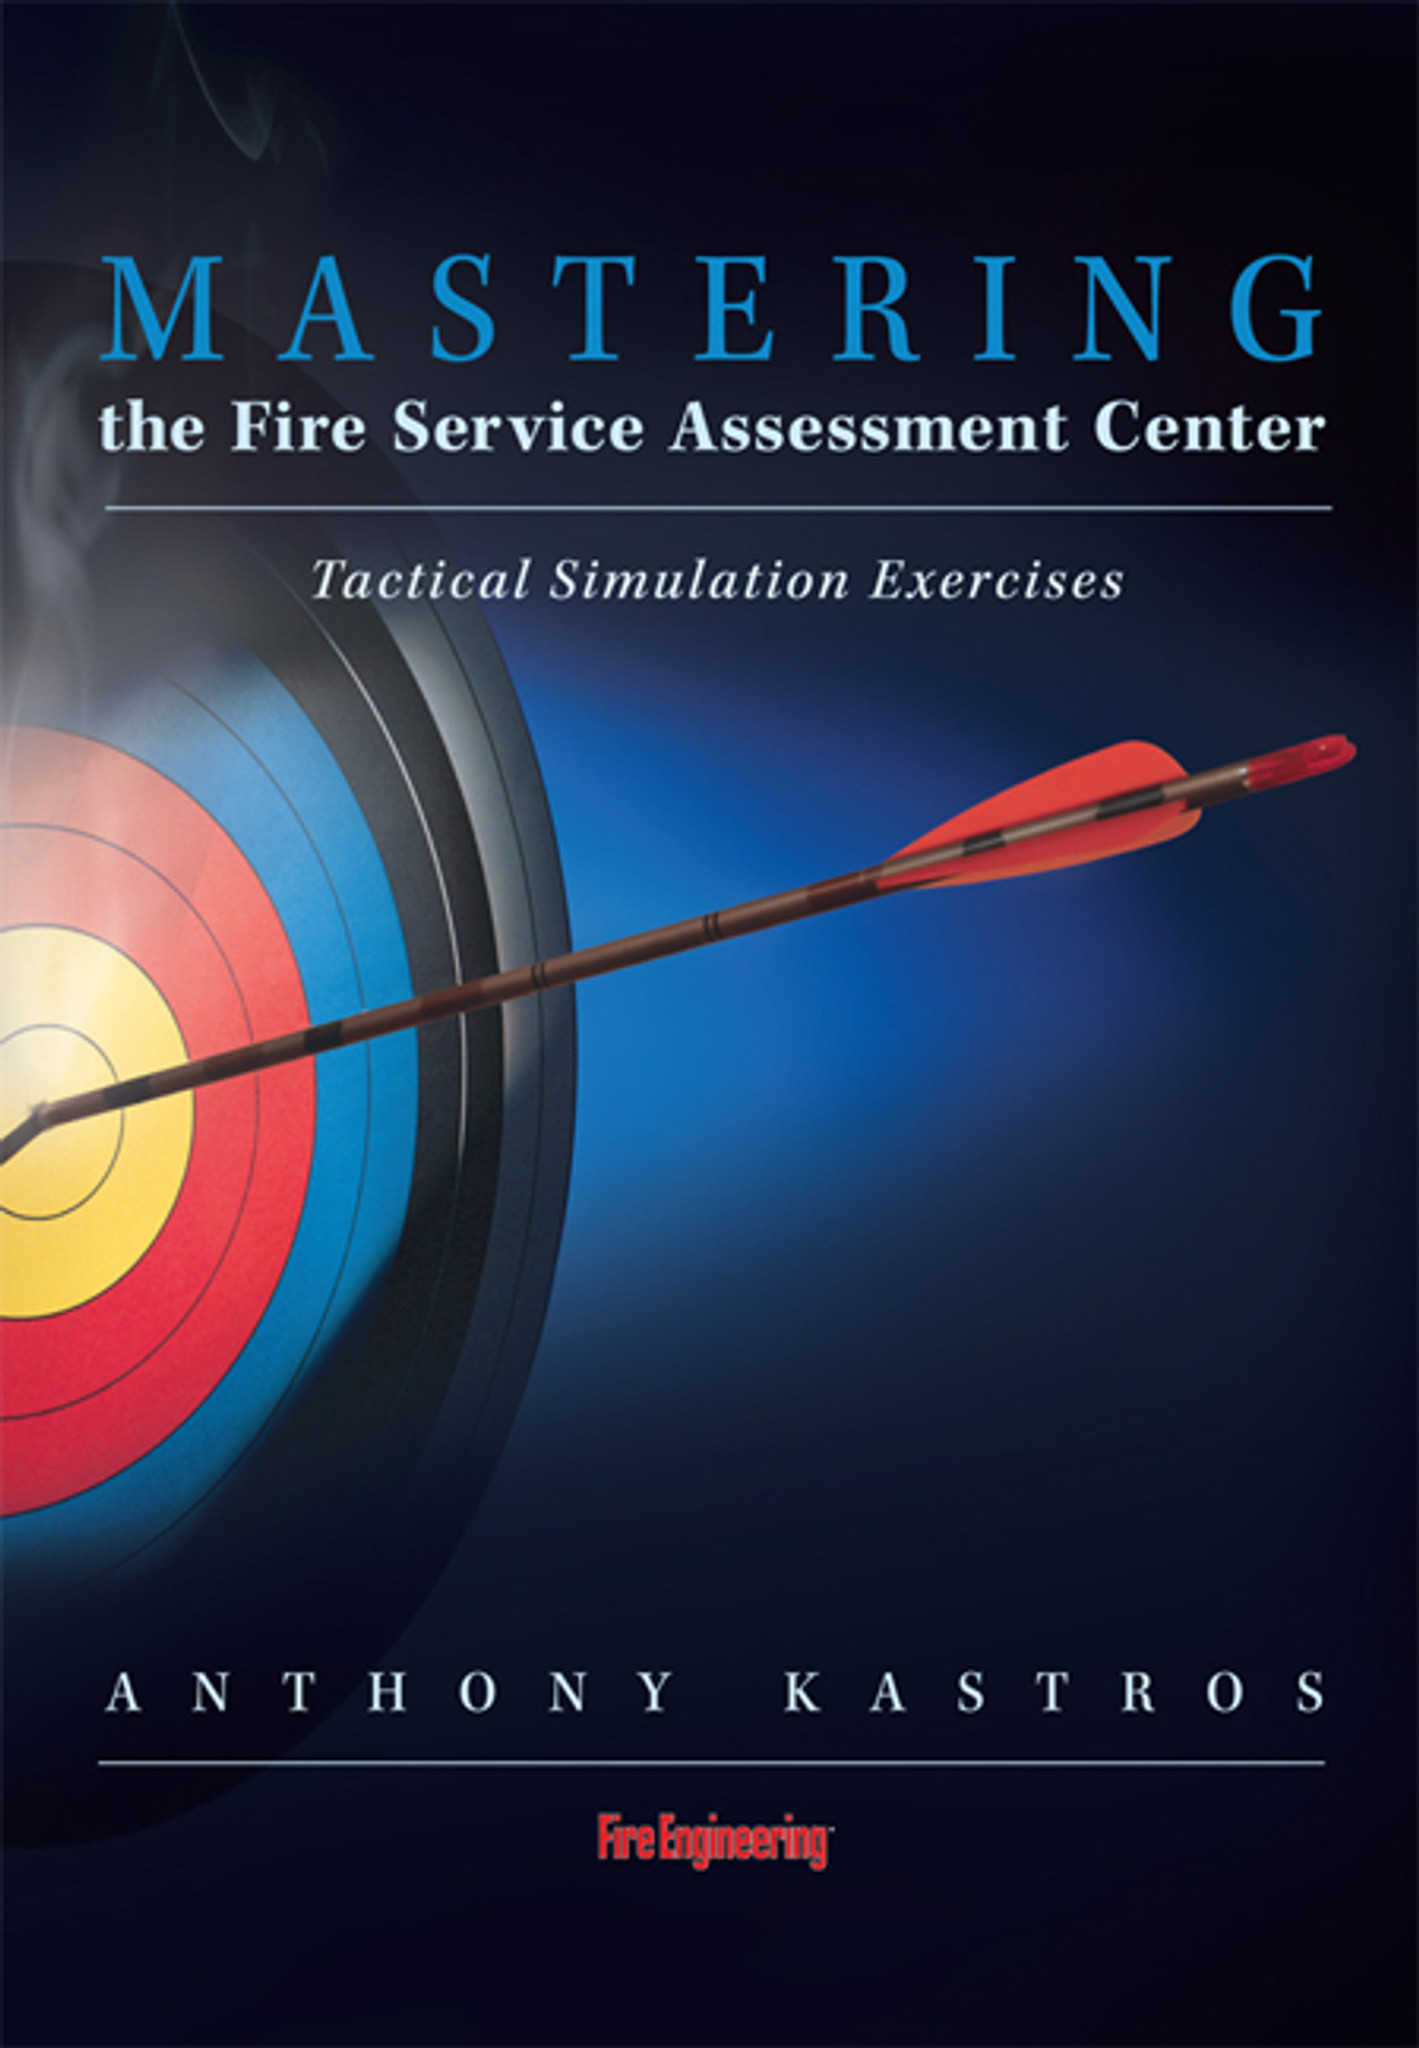 Mastering the Fire Service Assessment Center: Tactical Simulation Exercises  DVD